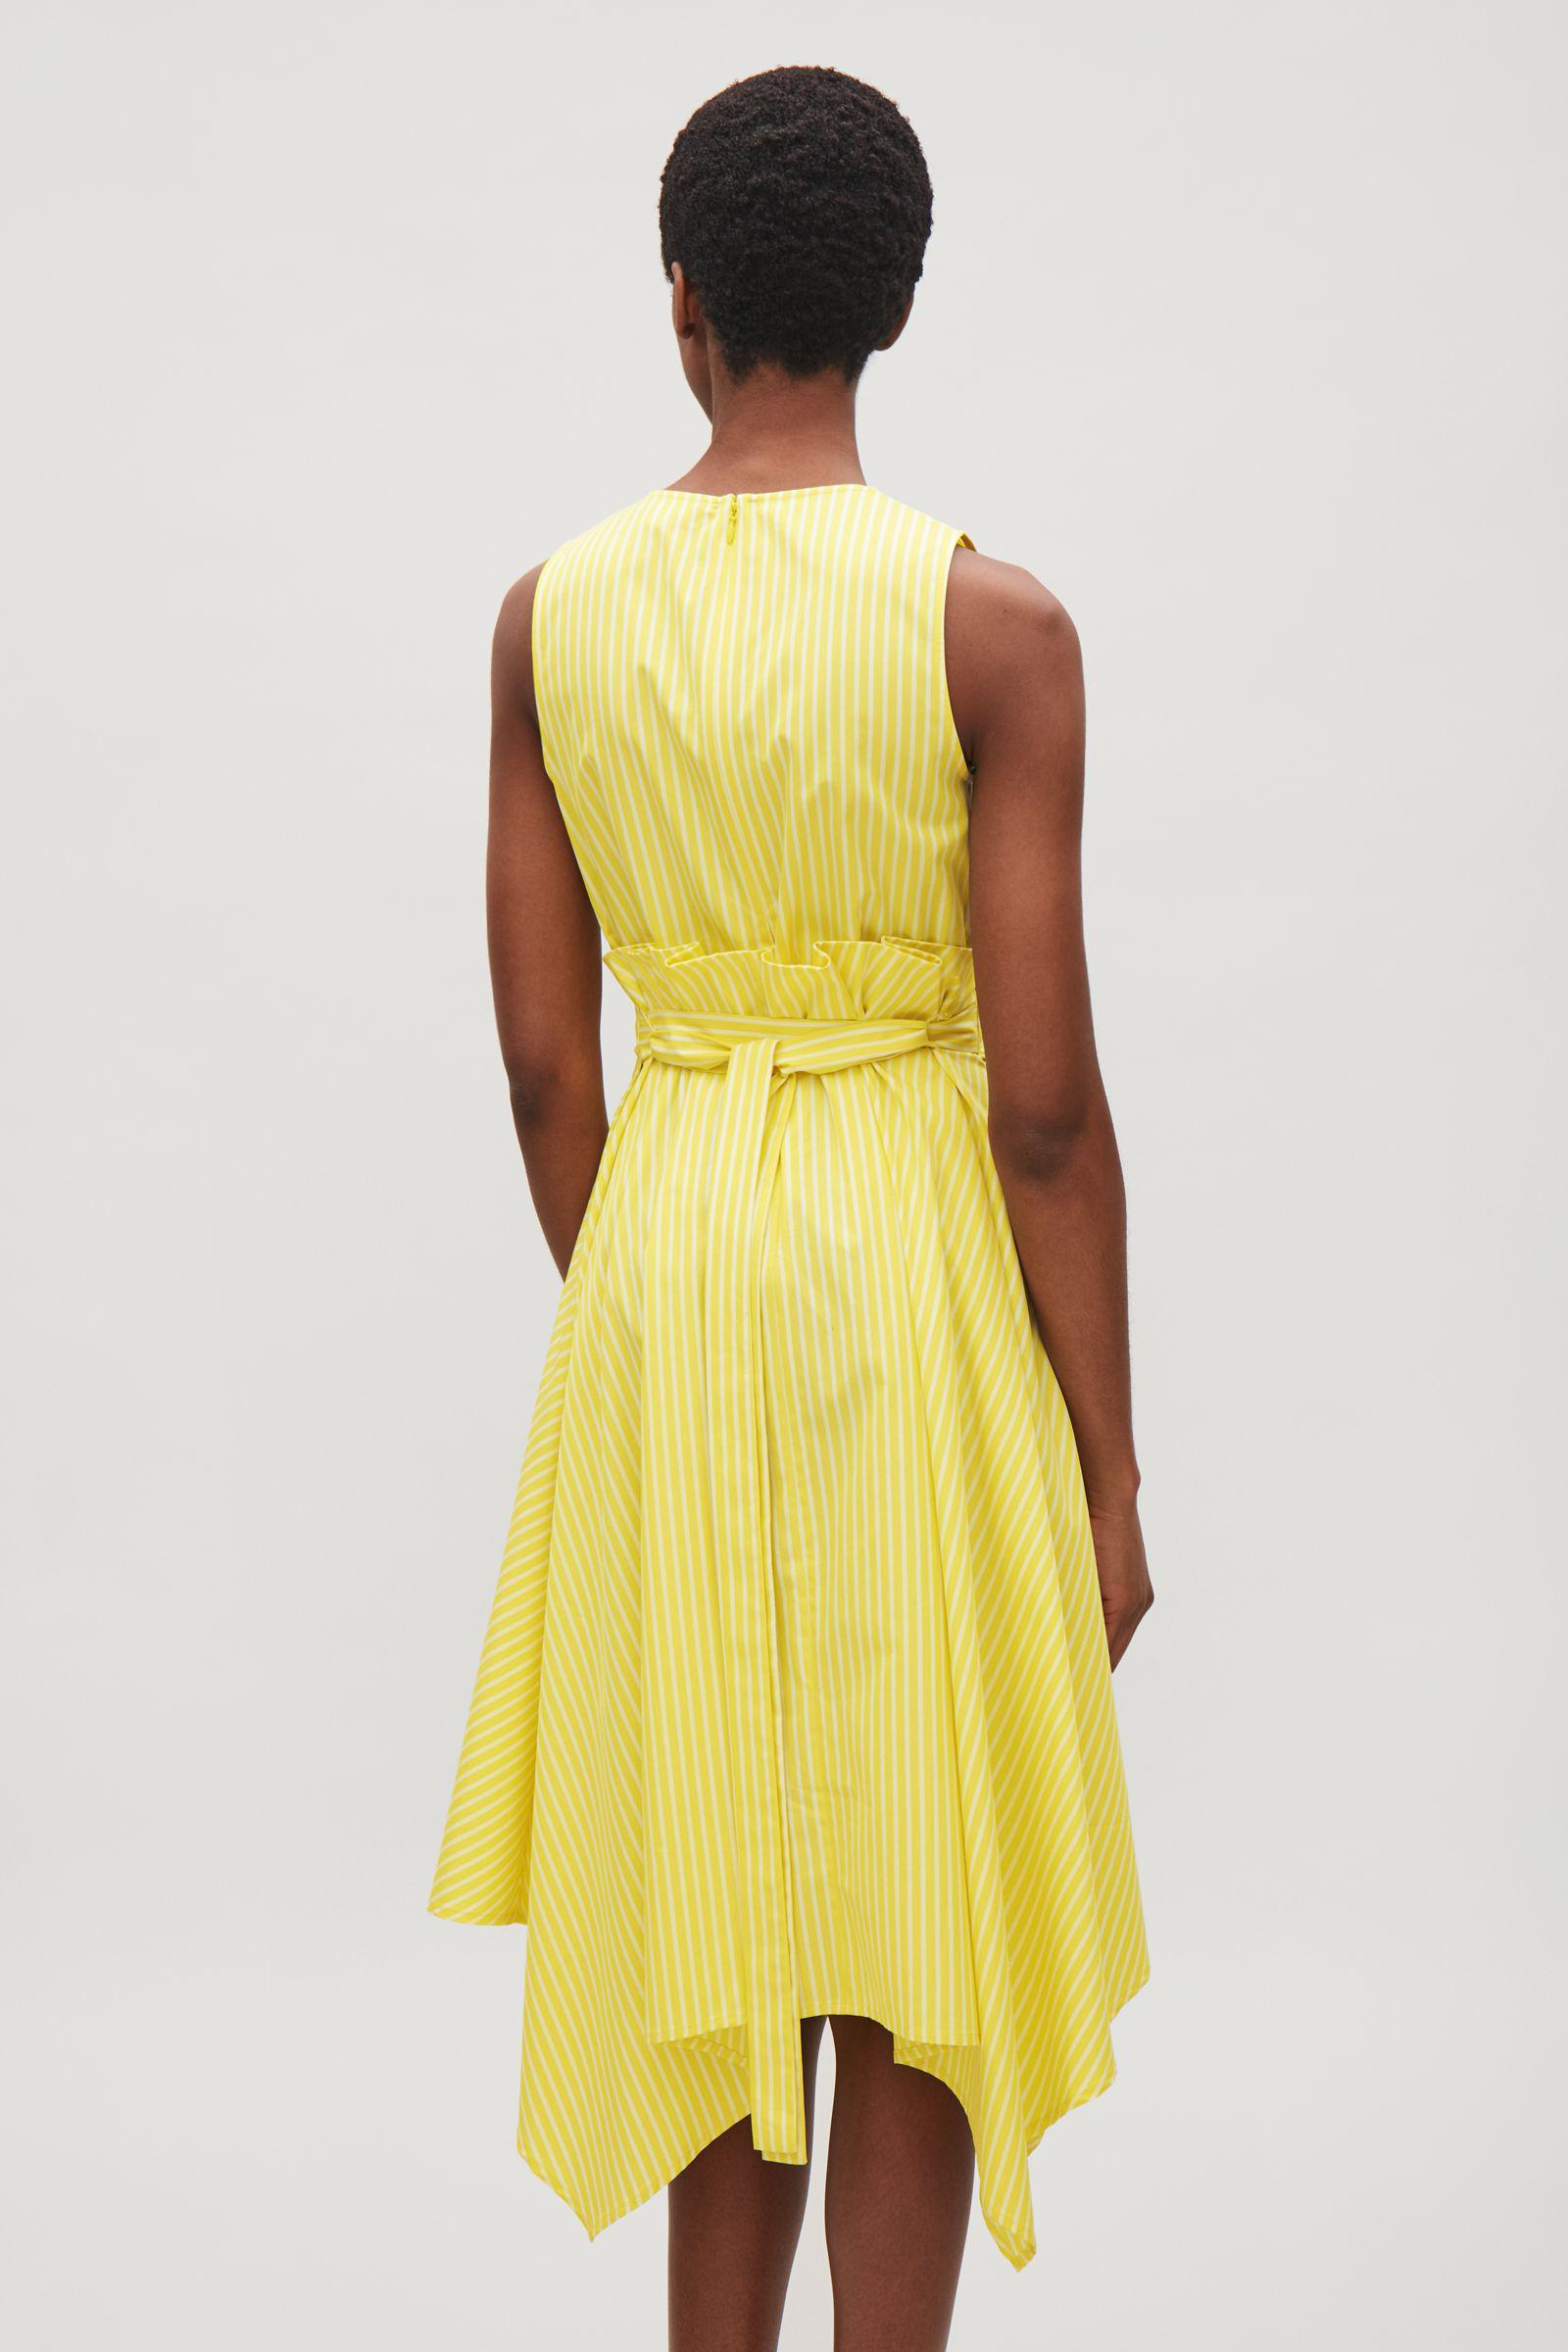 69bc771913 Lyst - COS Sleeveless Dress With Pleated Waist in Yellow